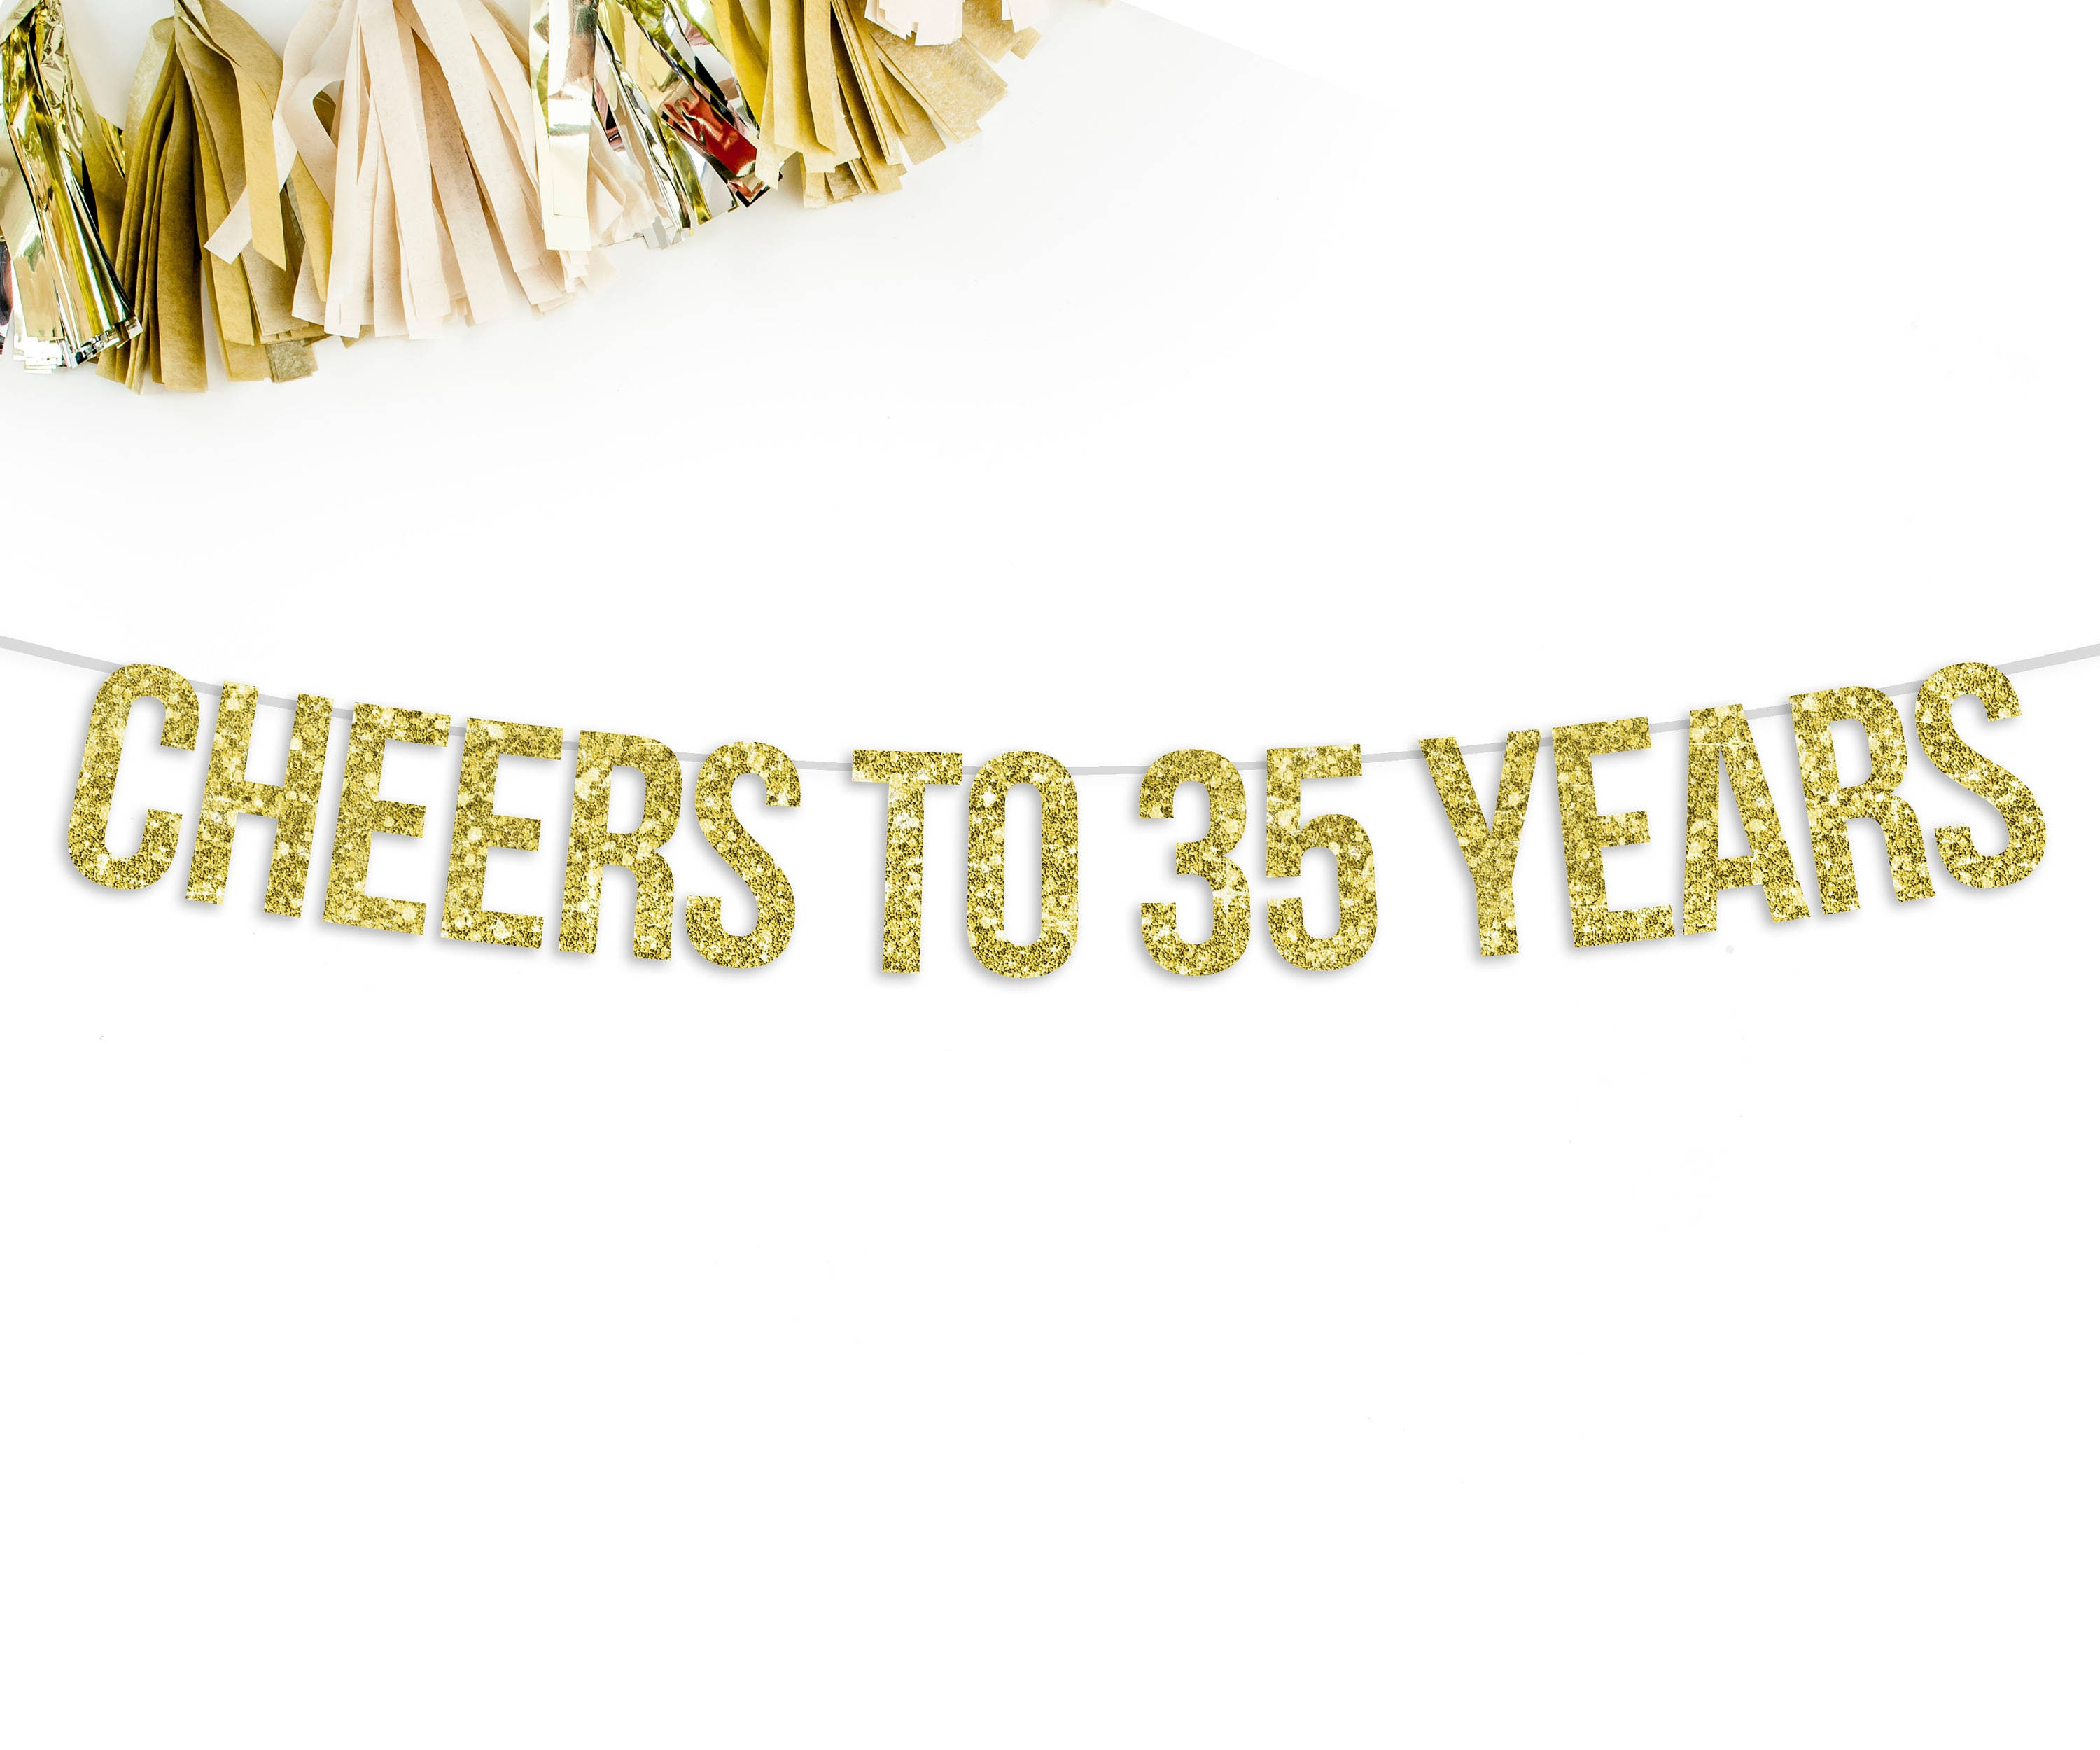 35 Year Wedding Anniversary Gifts: Cheers To 35 Years Banner 35th Wedding Anniversary Party